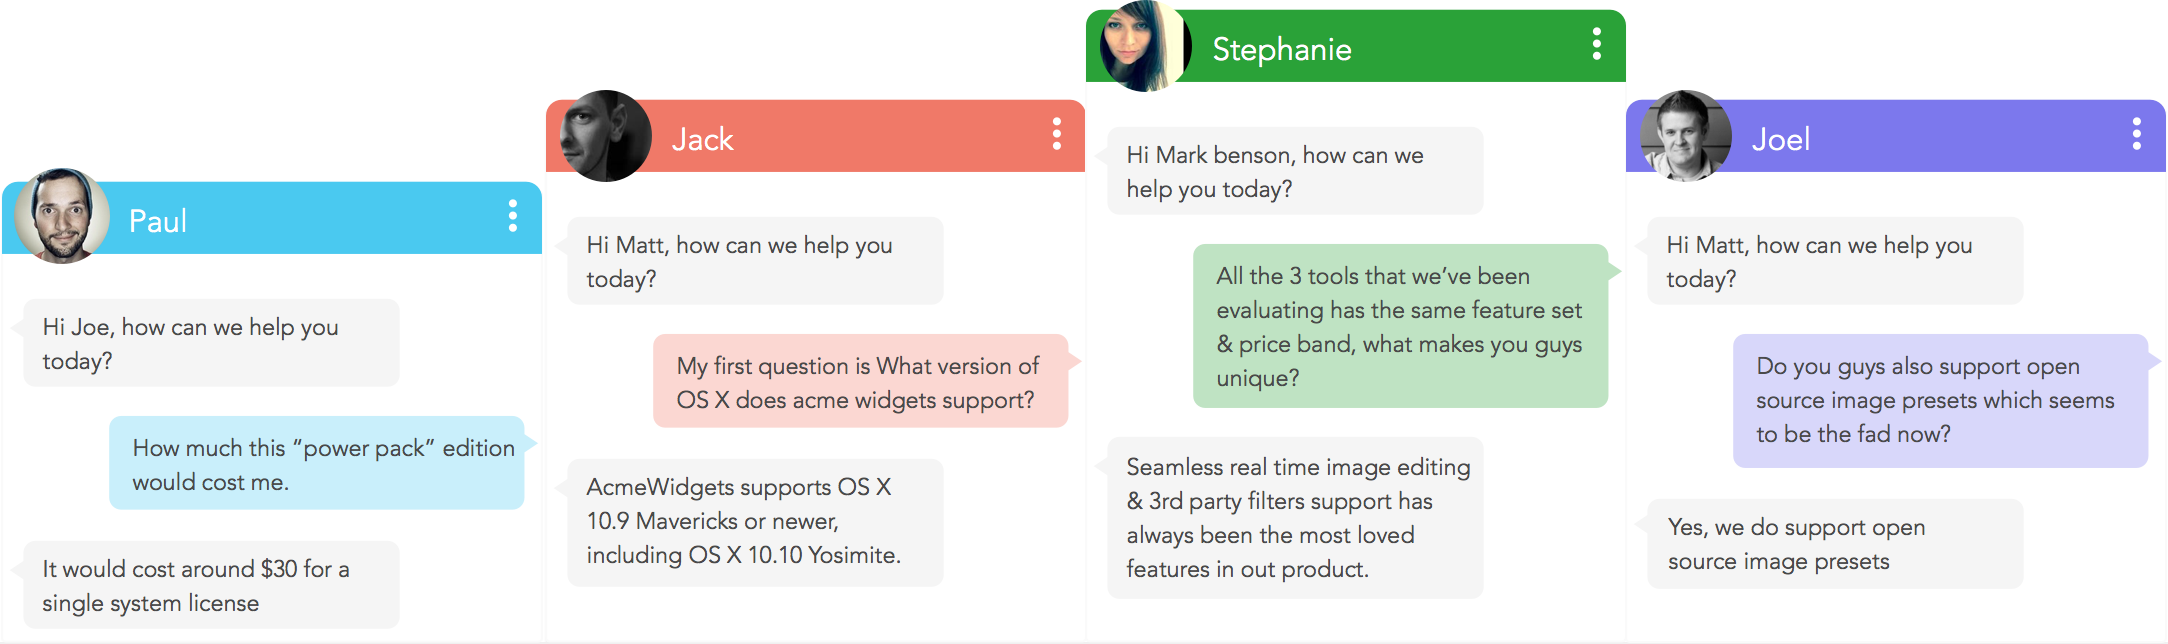 Personalize your live chat experience with custom widgets